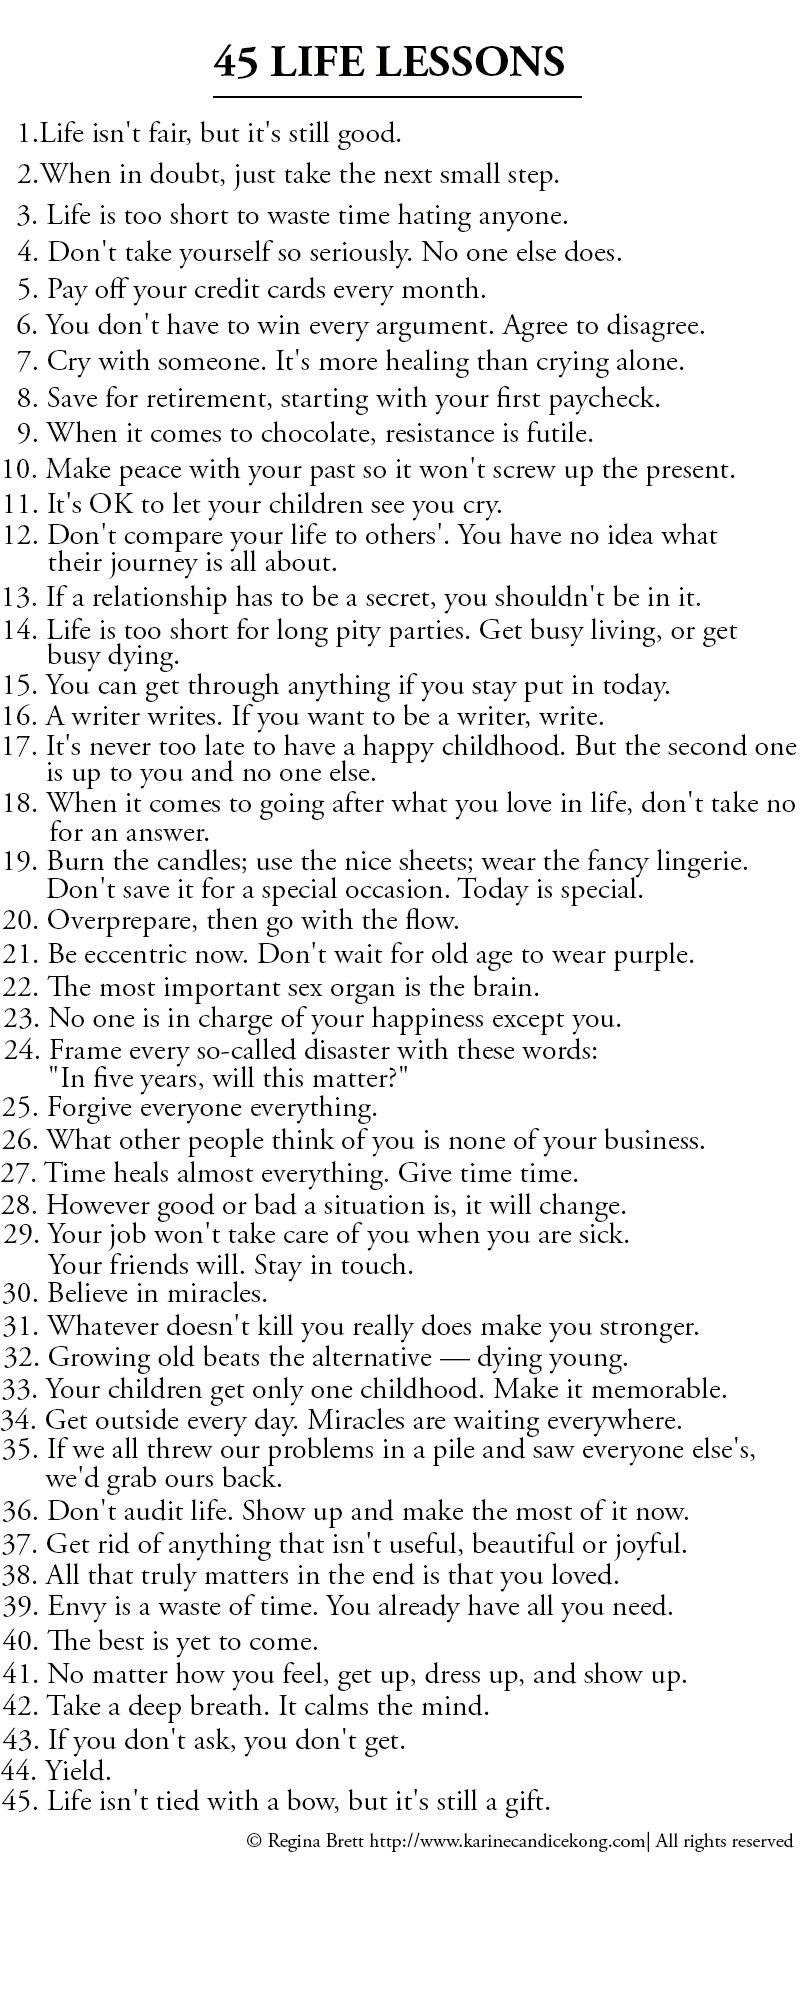 Life lessons.